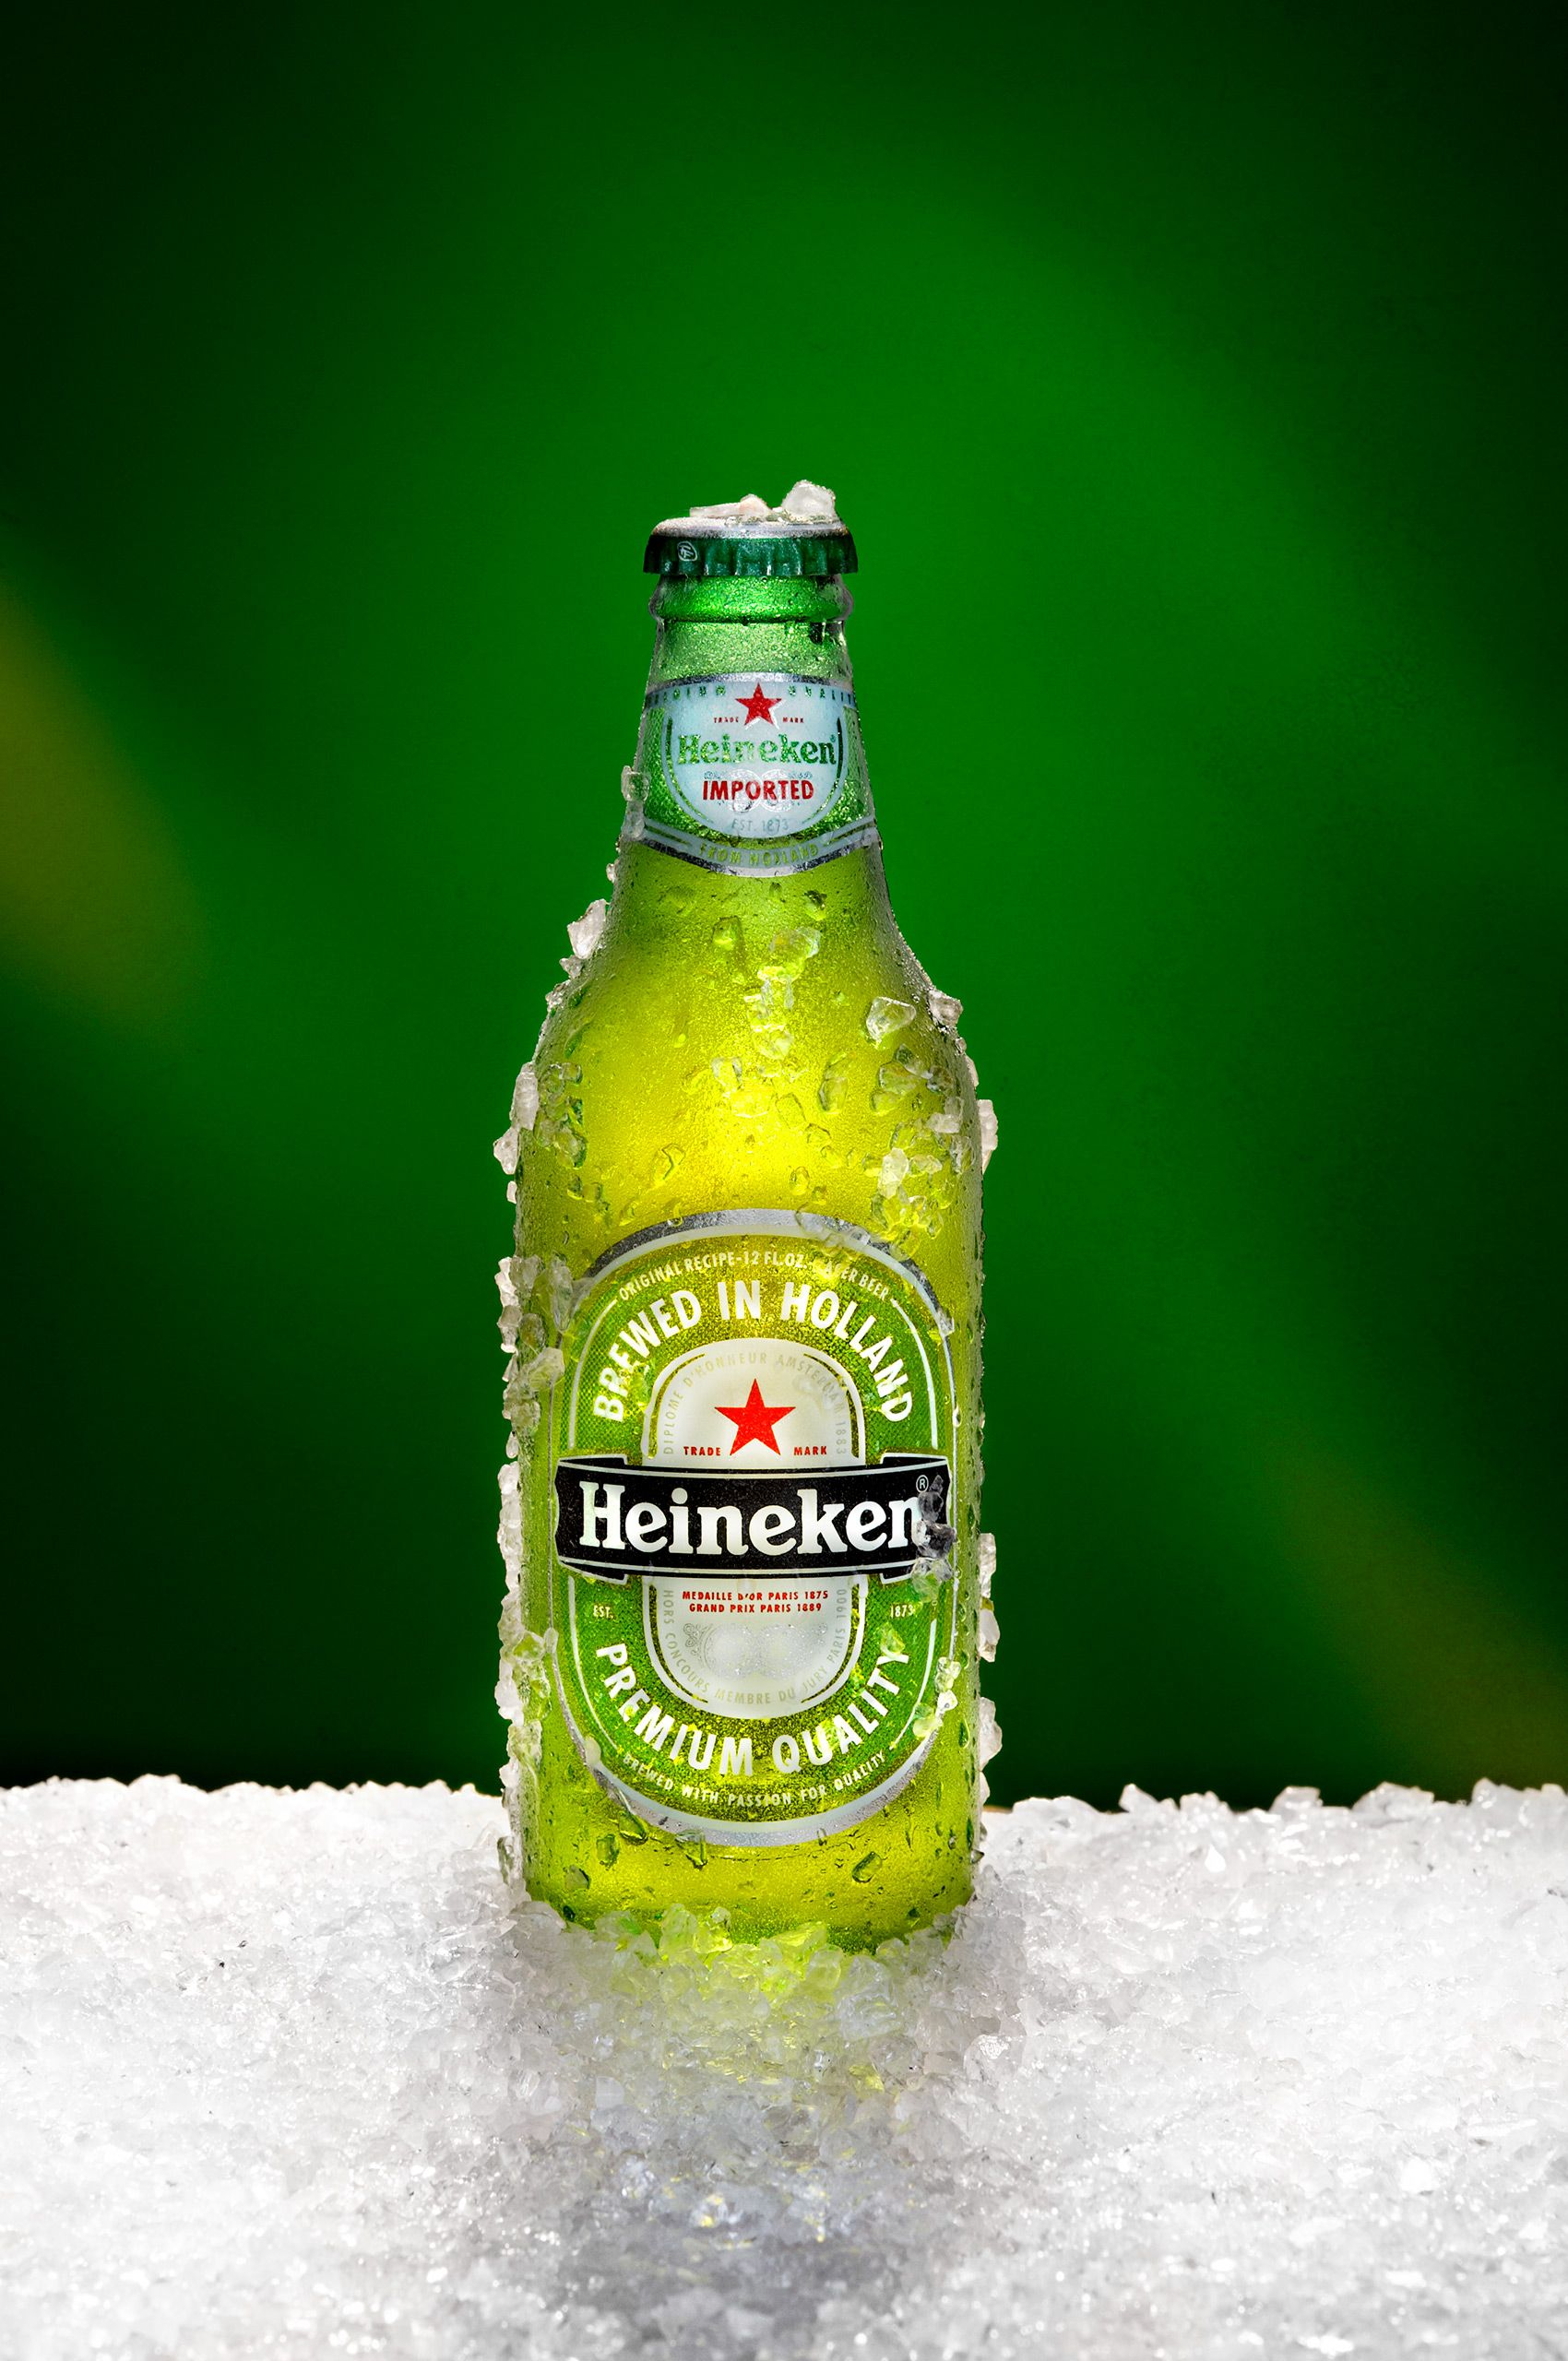 Heineken_Bottle.jpg